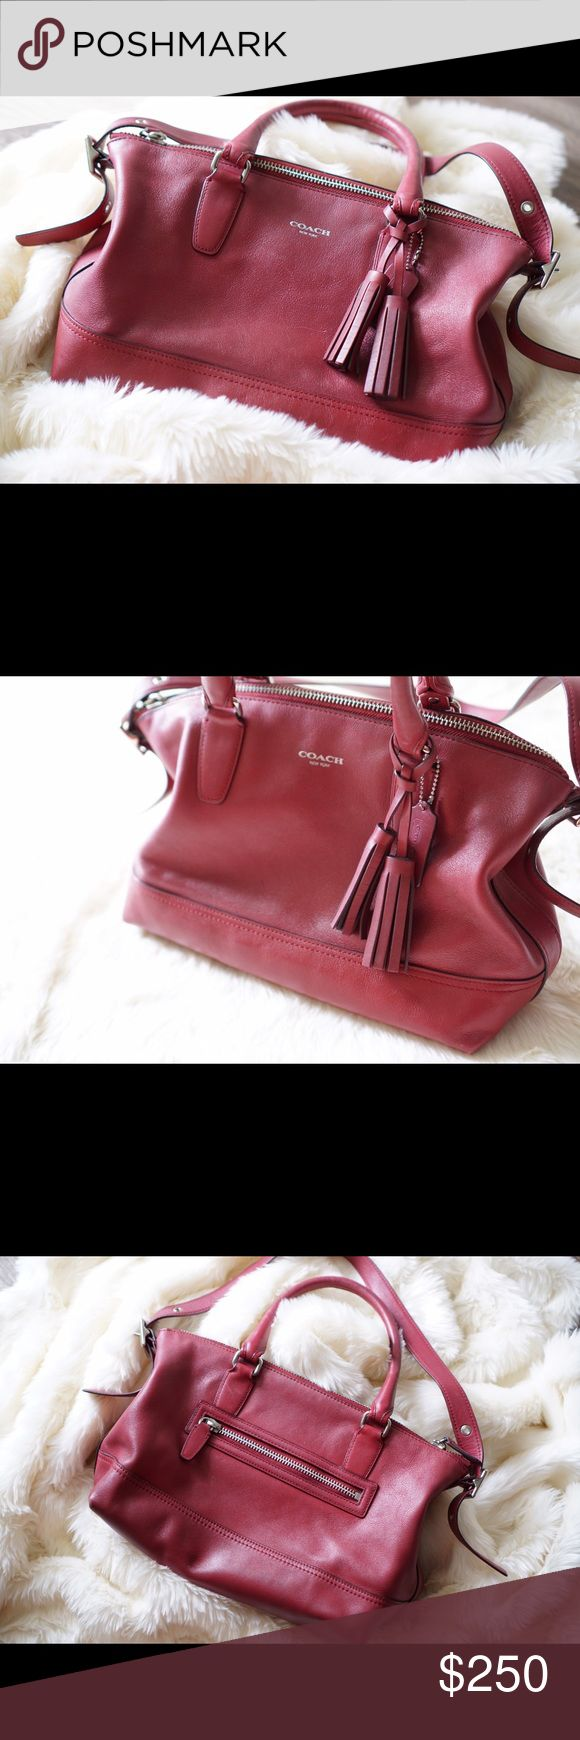 Coach Legacy satchel in dark cherry, rare! The perfect everyday purse in a unique color from Coach! Light lip liner stain probably easily removed on the inside. Coach Bags Shoulder Bags